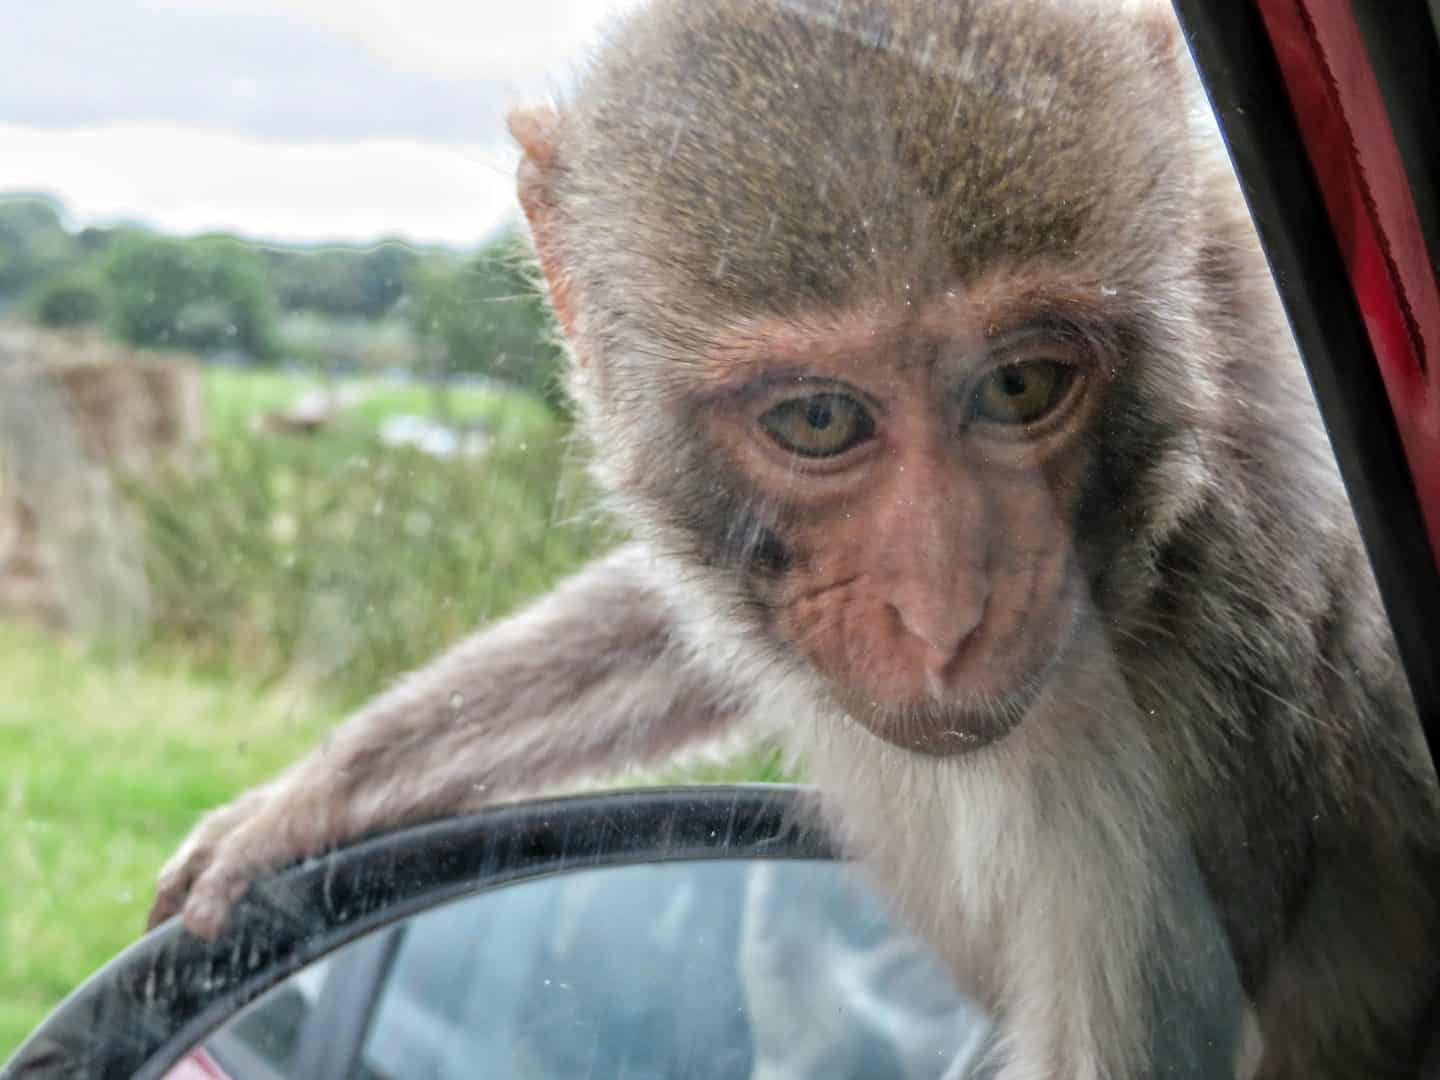 Monkey looking into car window at Longleat Safari Park